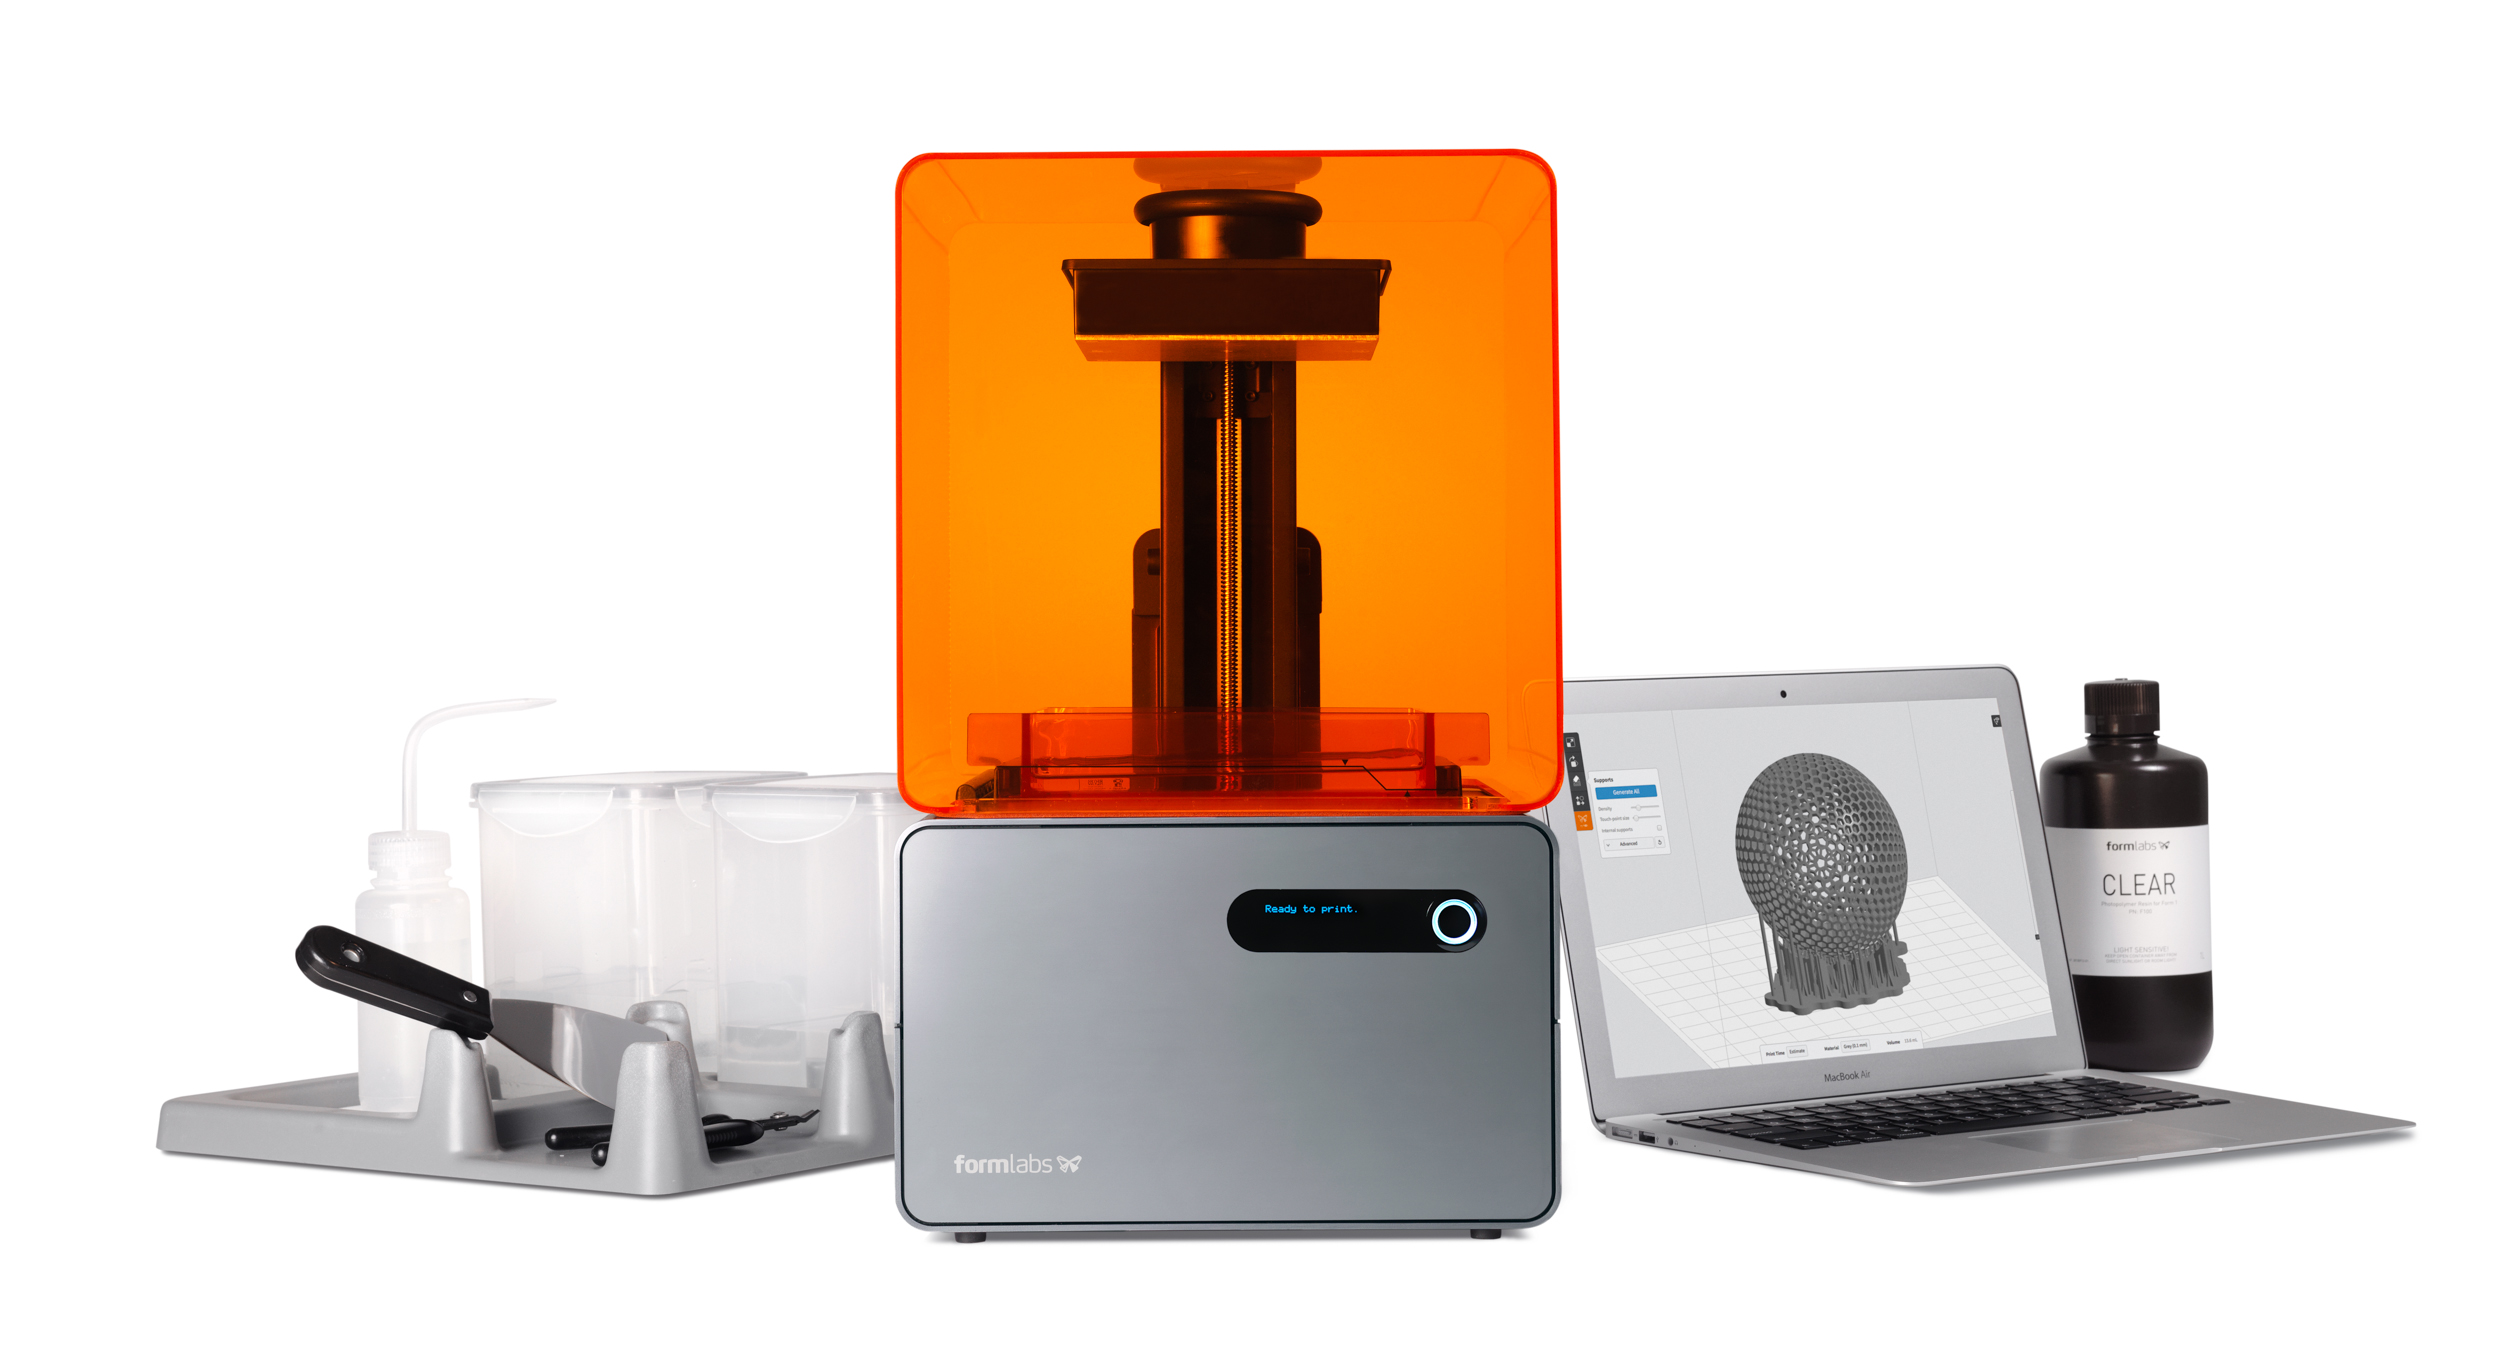 Introducing the Form 1+ | Formlabs